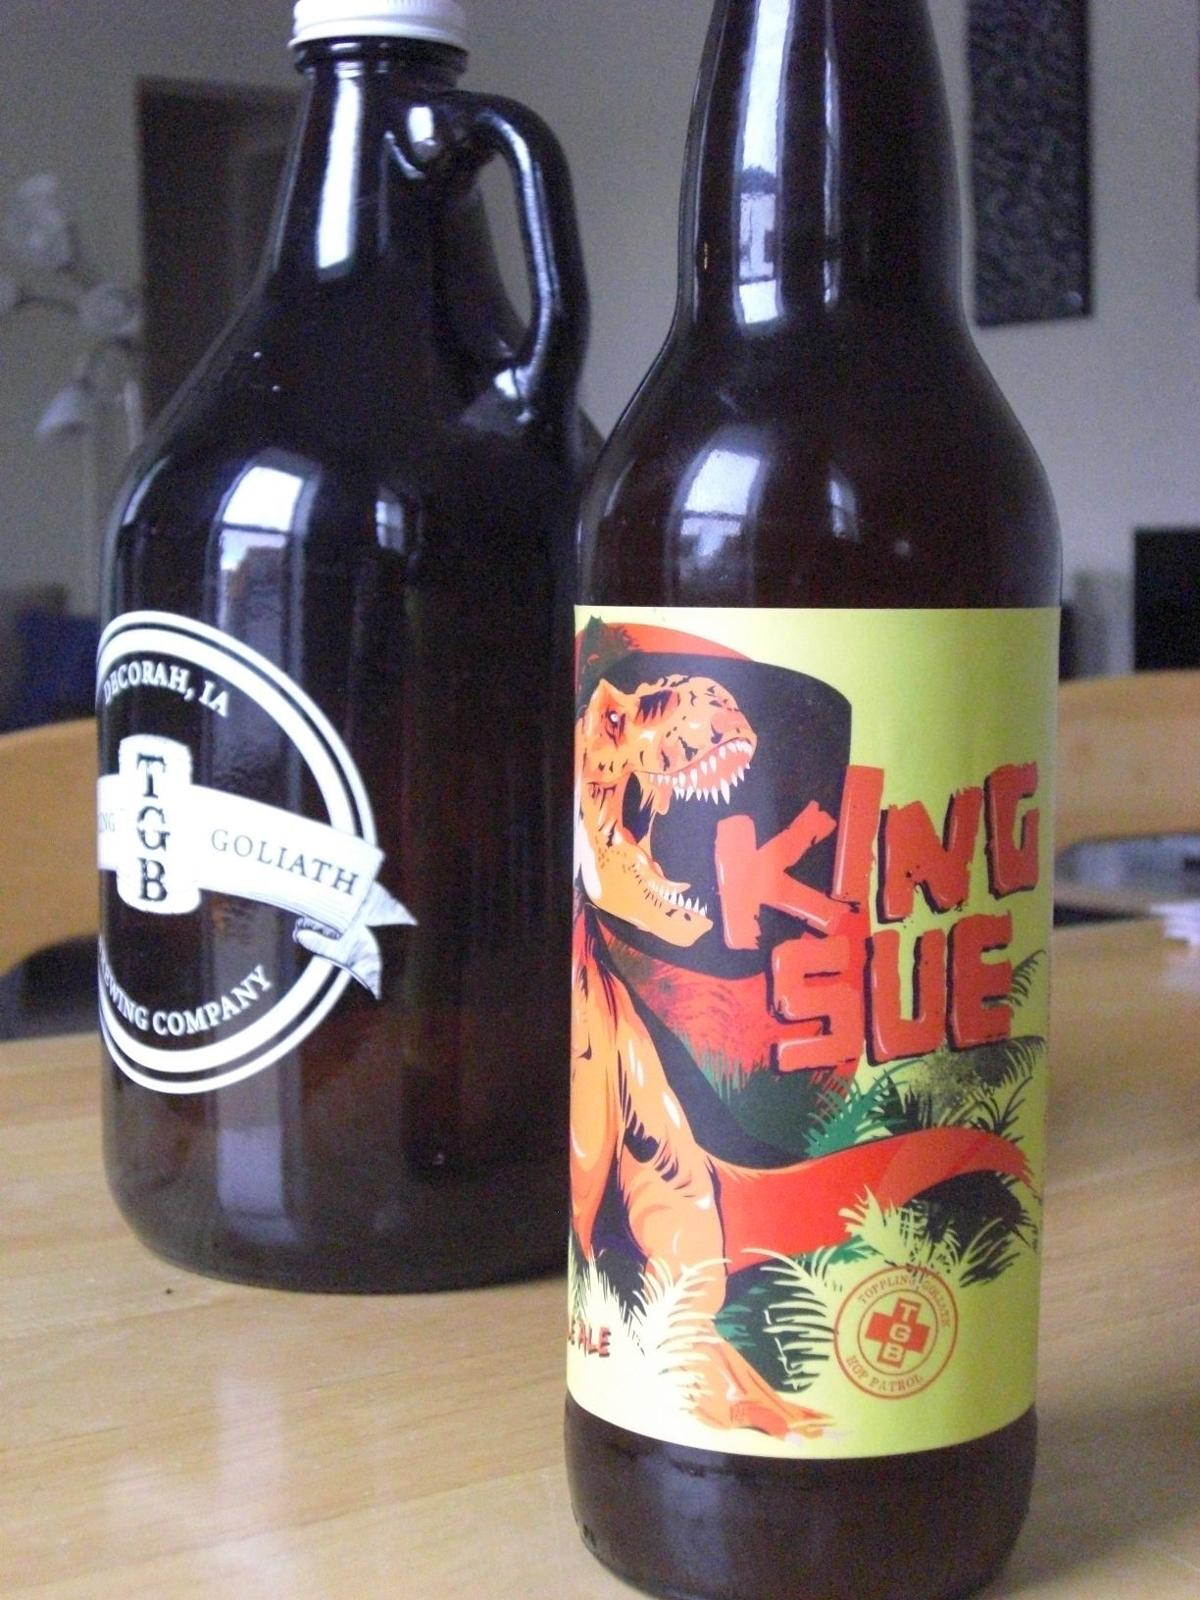 King Sue - Toppling Goliath